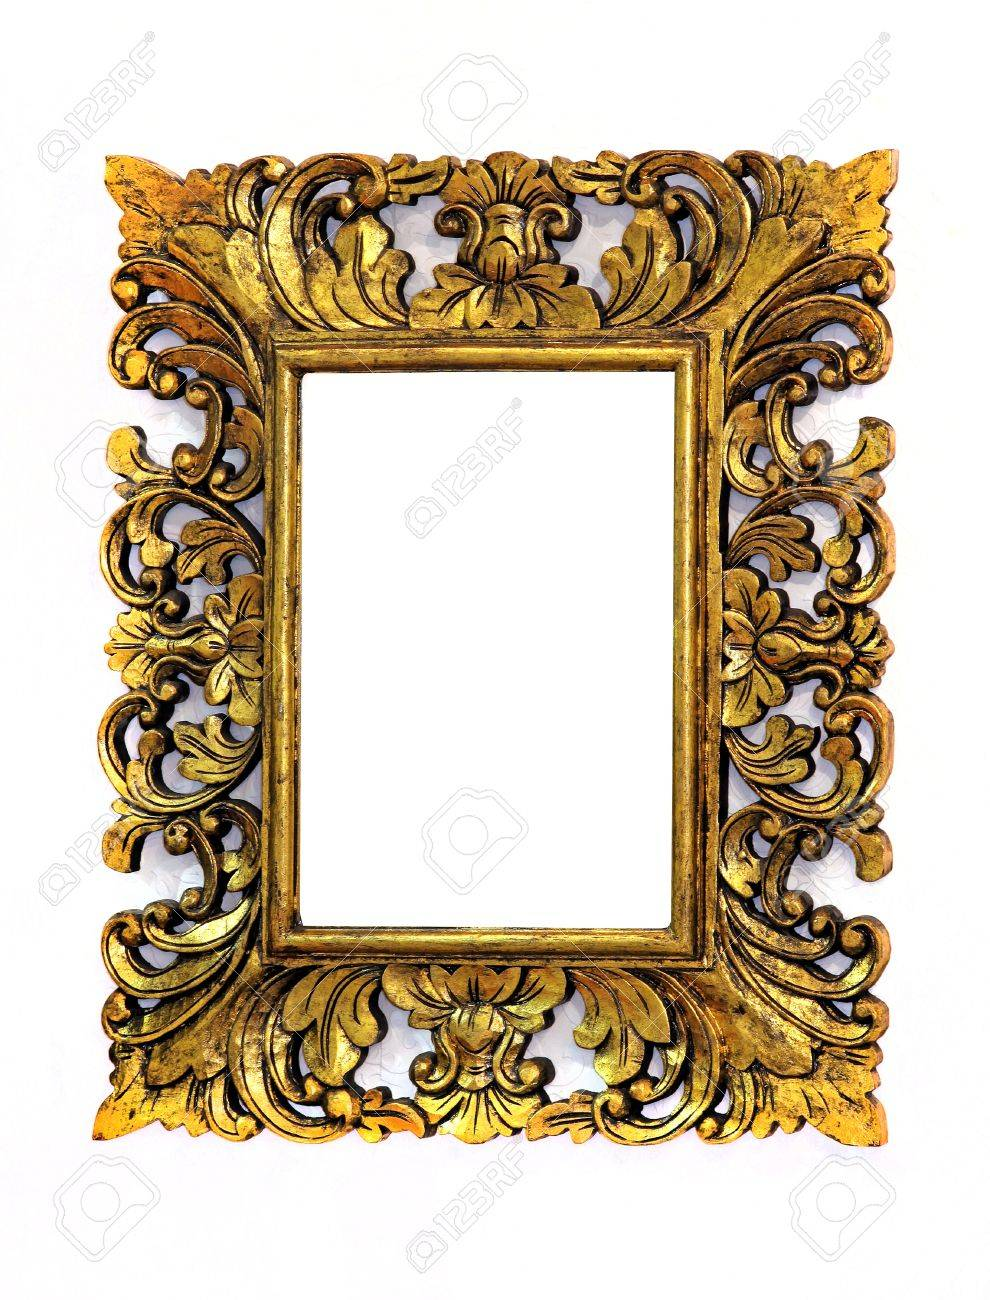 Gold Square Baroque Frame On White Wall Stock Photo, Picture And ...